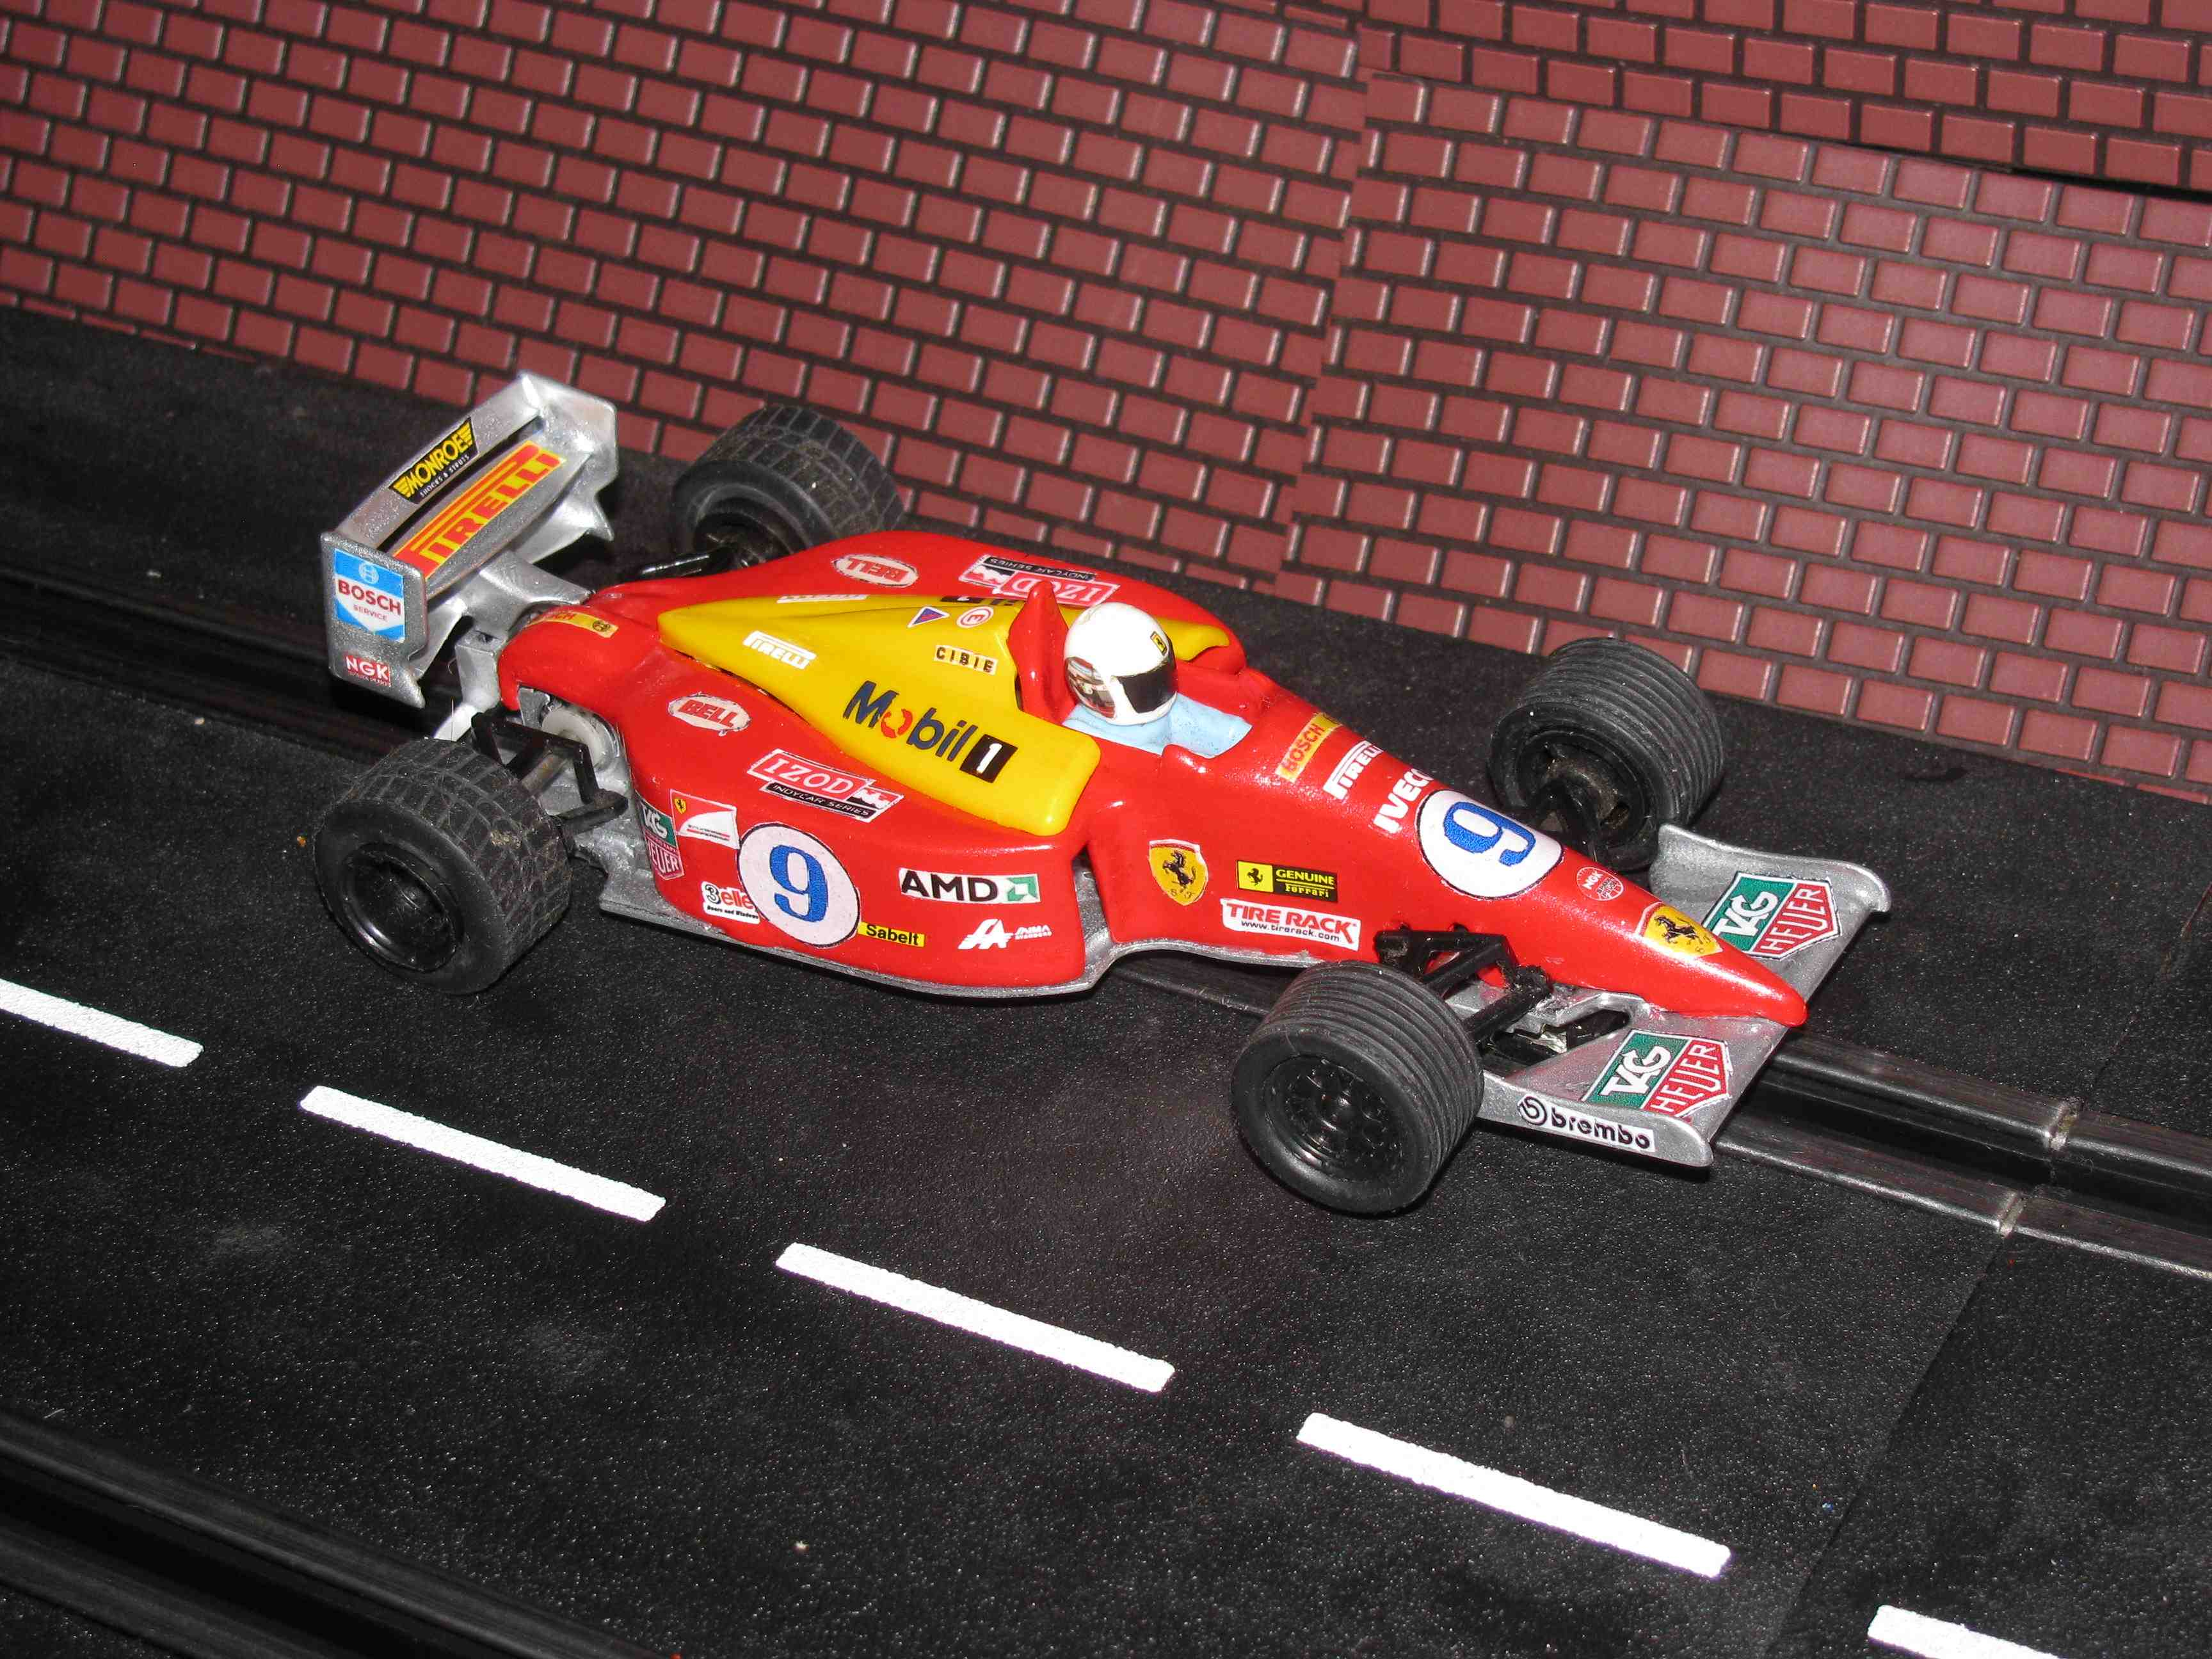 Slot Car Scalextric 1//32nd Vintage F1 Adesivi Decalcomania